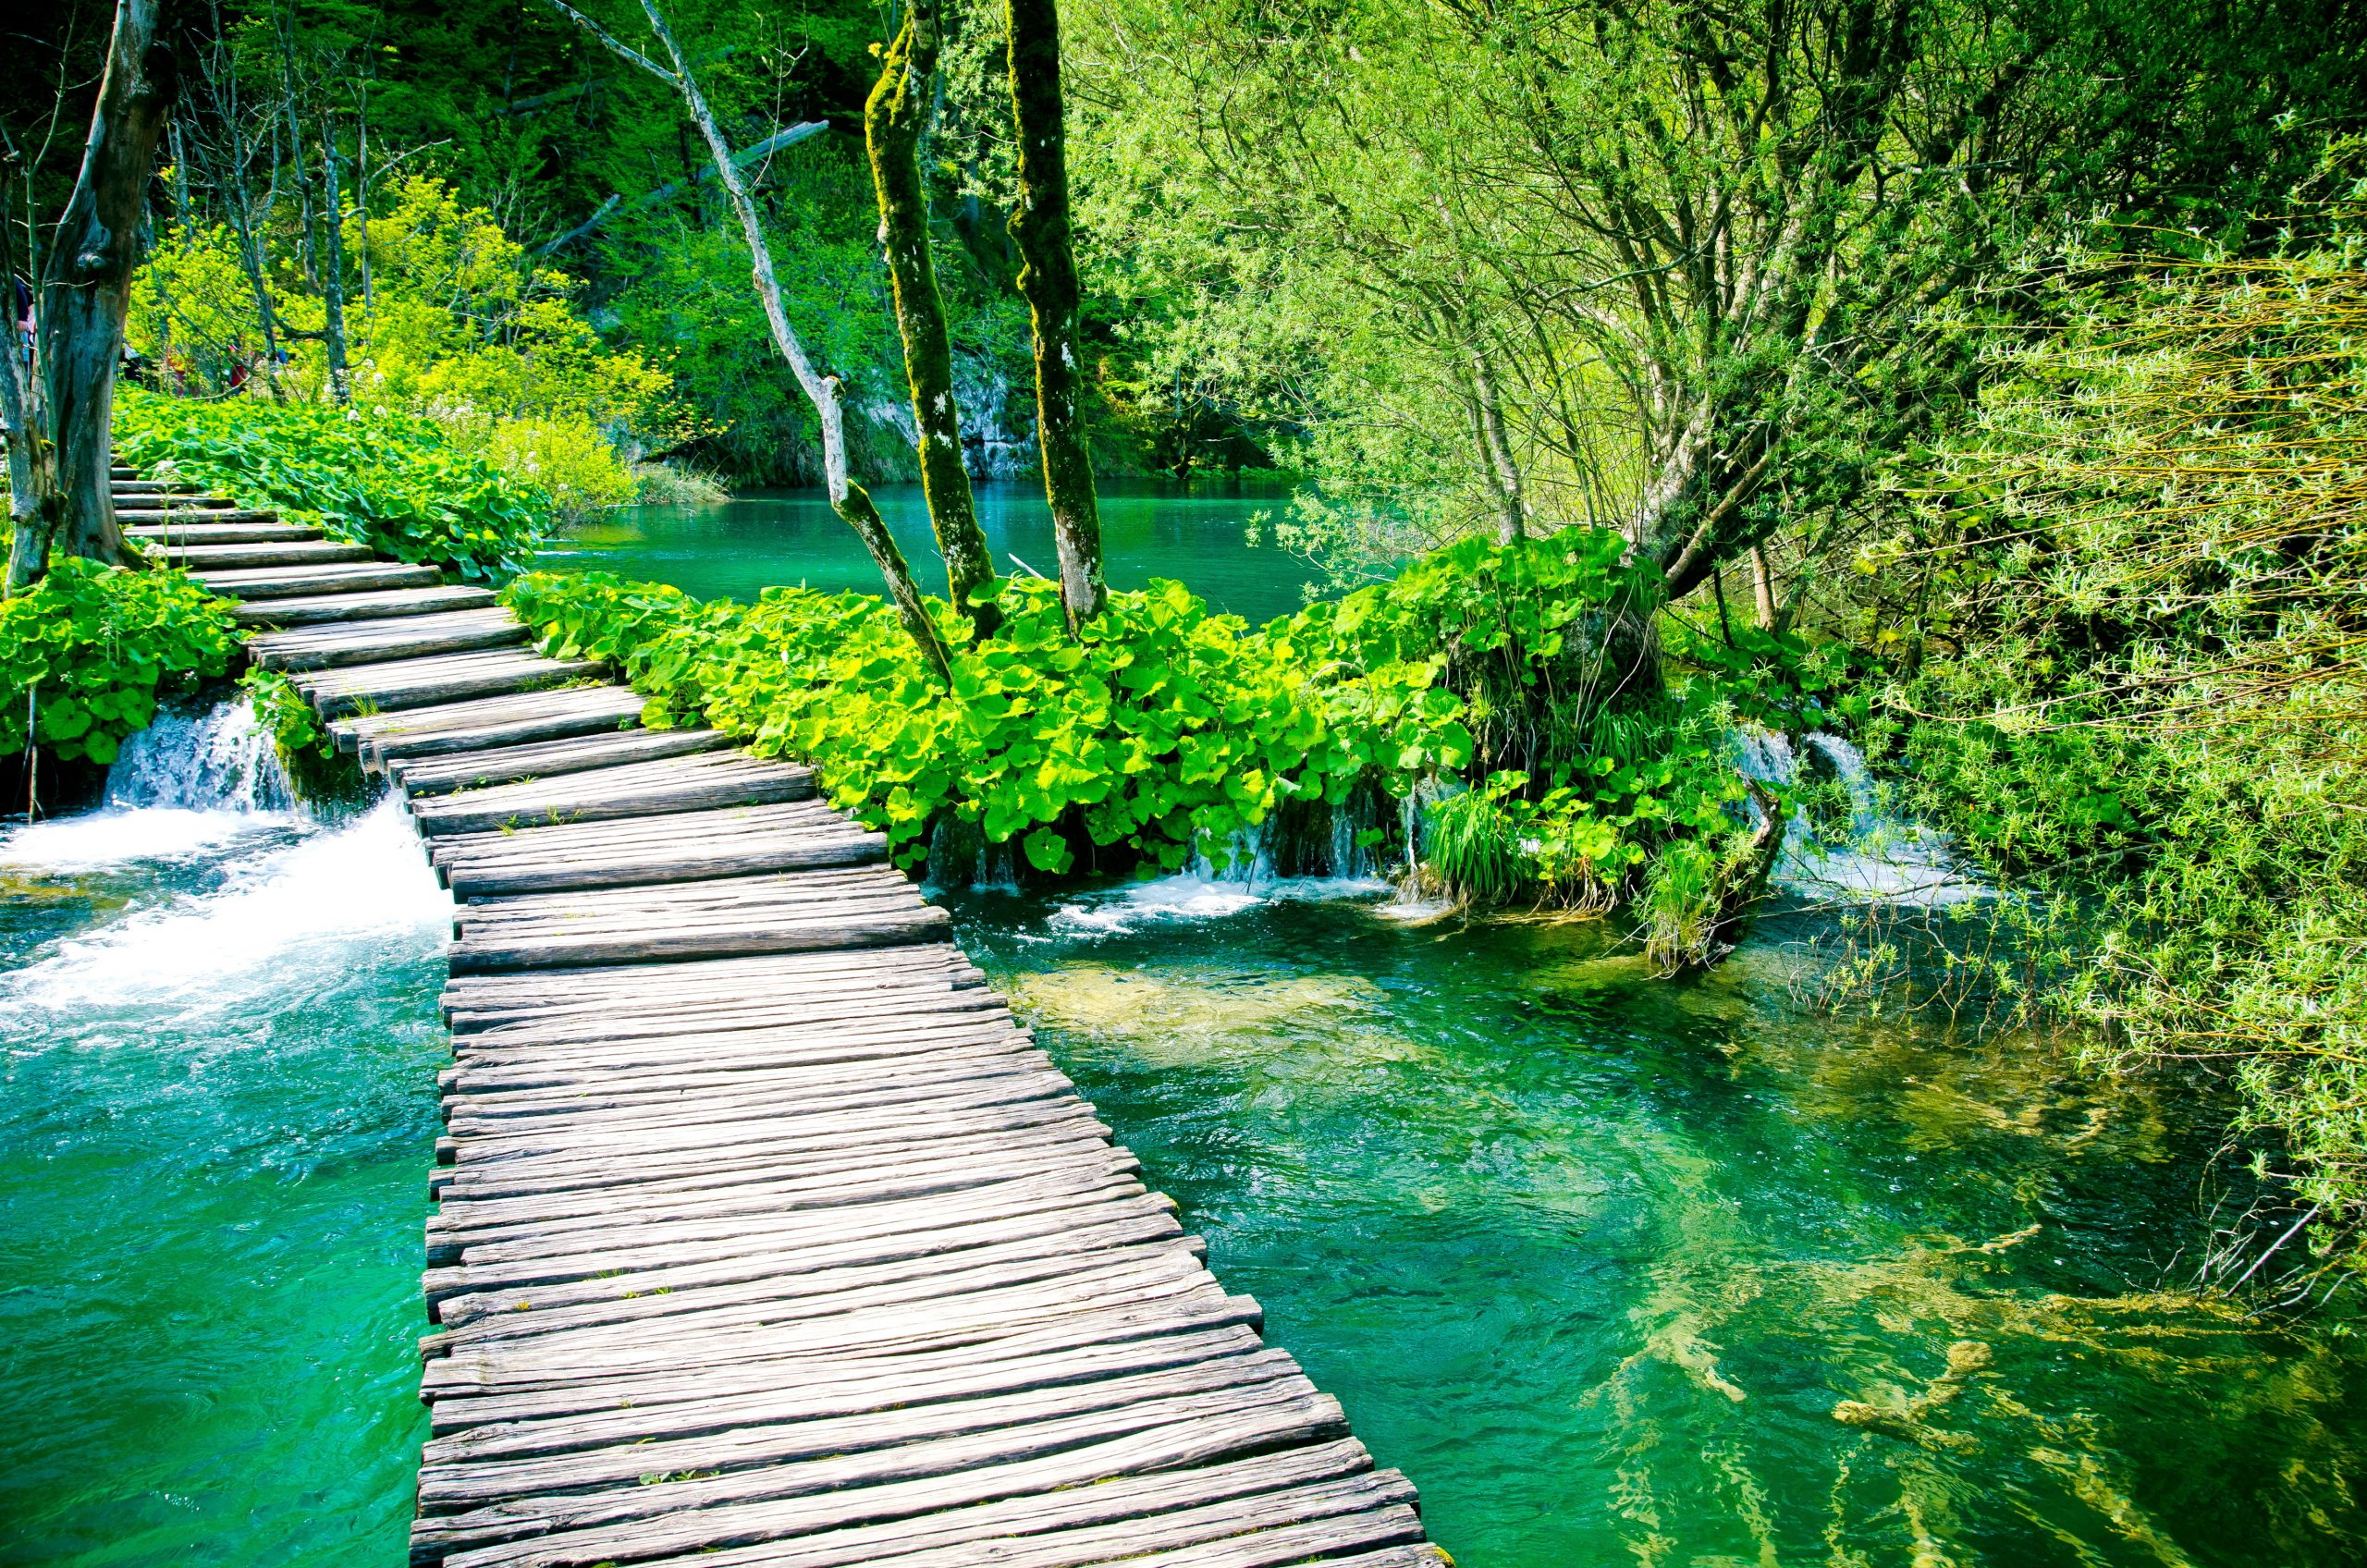 Wander On The Wooden Paths During The Plitvice National Park Day Tour From Split